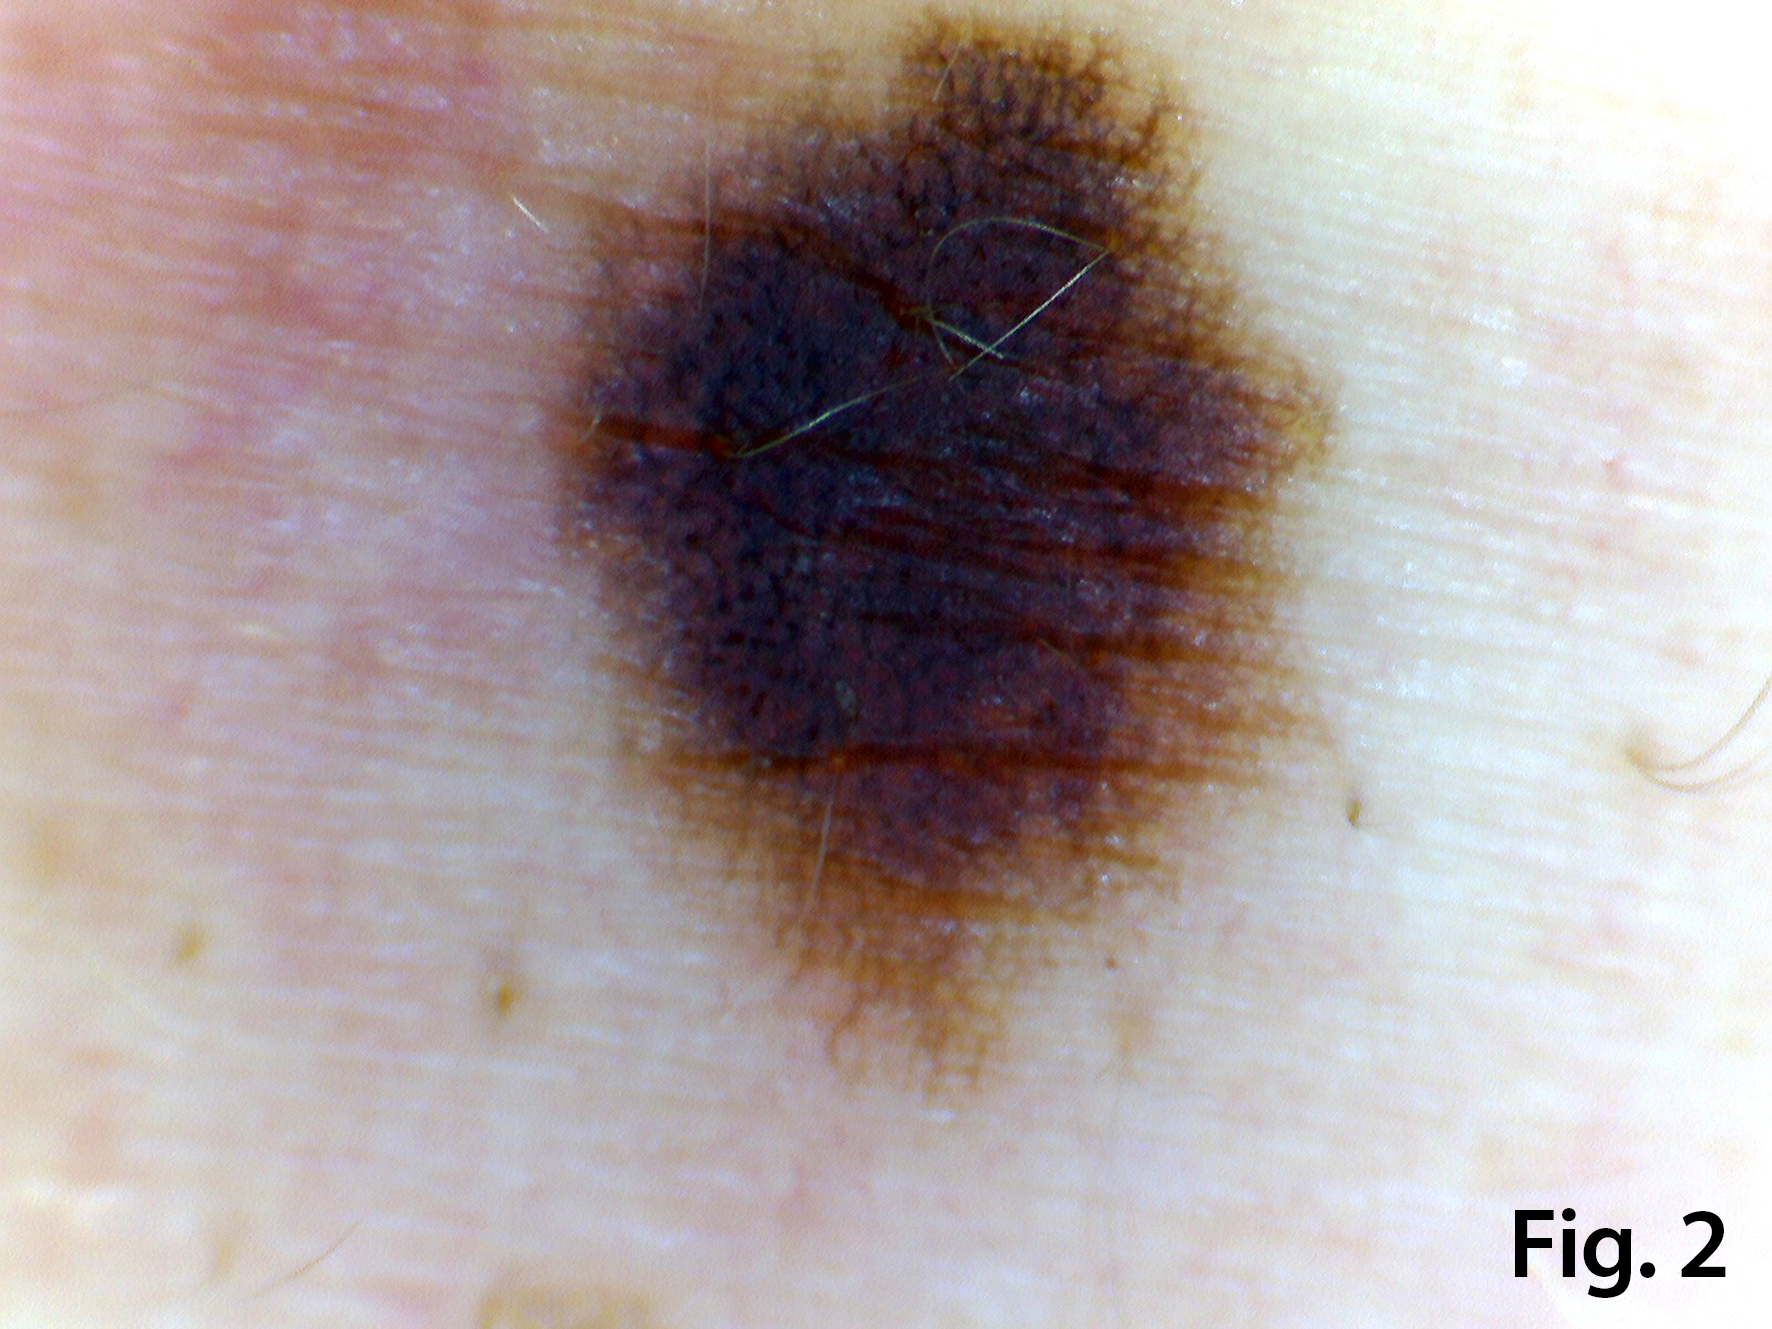 A rare case of a co-located pigmented naevus and dermal cyst: The utility of very high frequency Ultrasound and Videodermoscopy for differentiation </br> [Nov 2018]